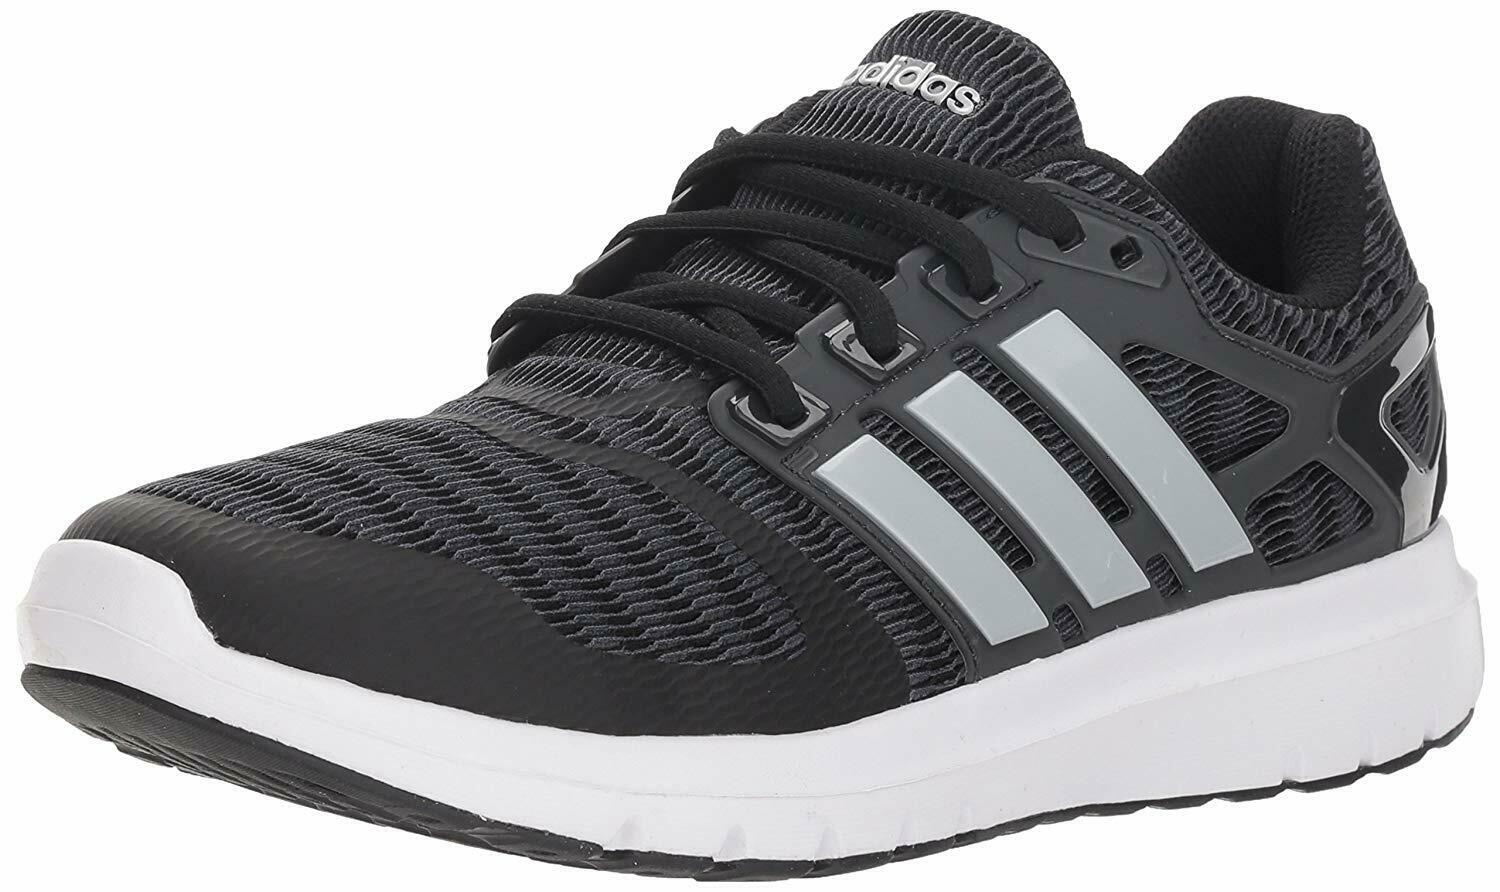 Adidas Women's Energy Energy Energy Cloud V Running shoes B44846 Size 6.5 New in the box 2e7955